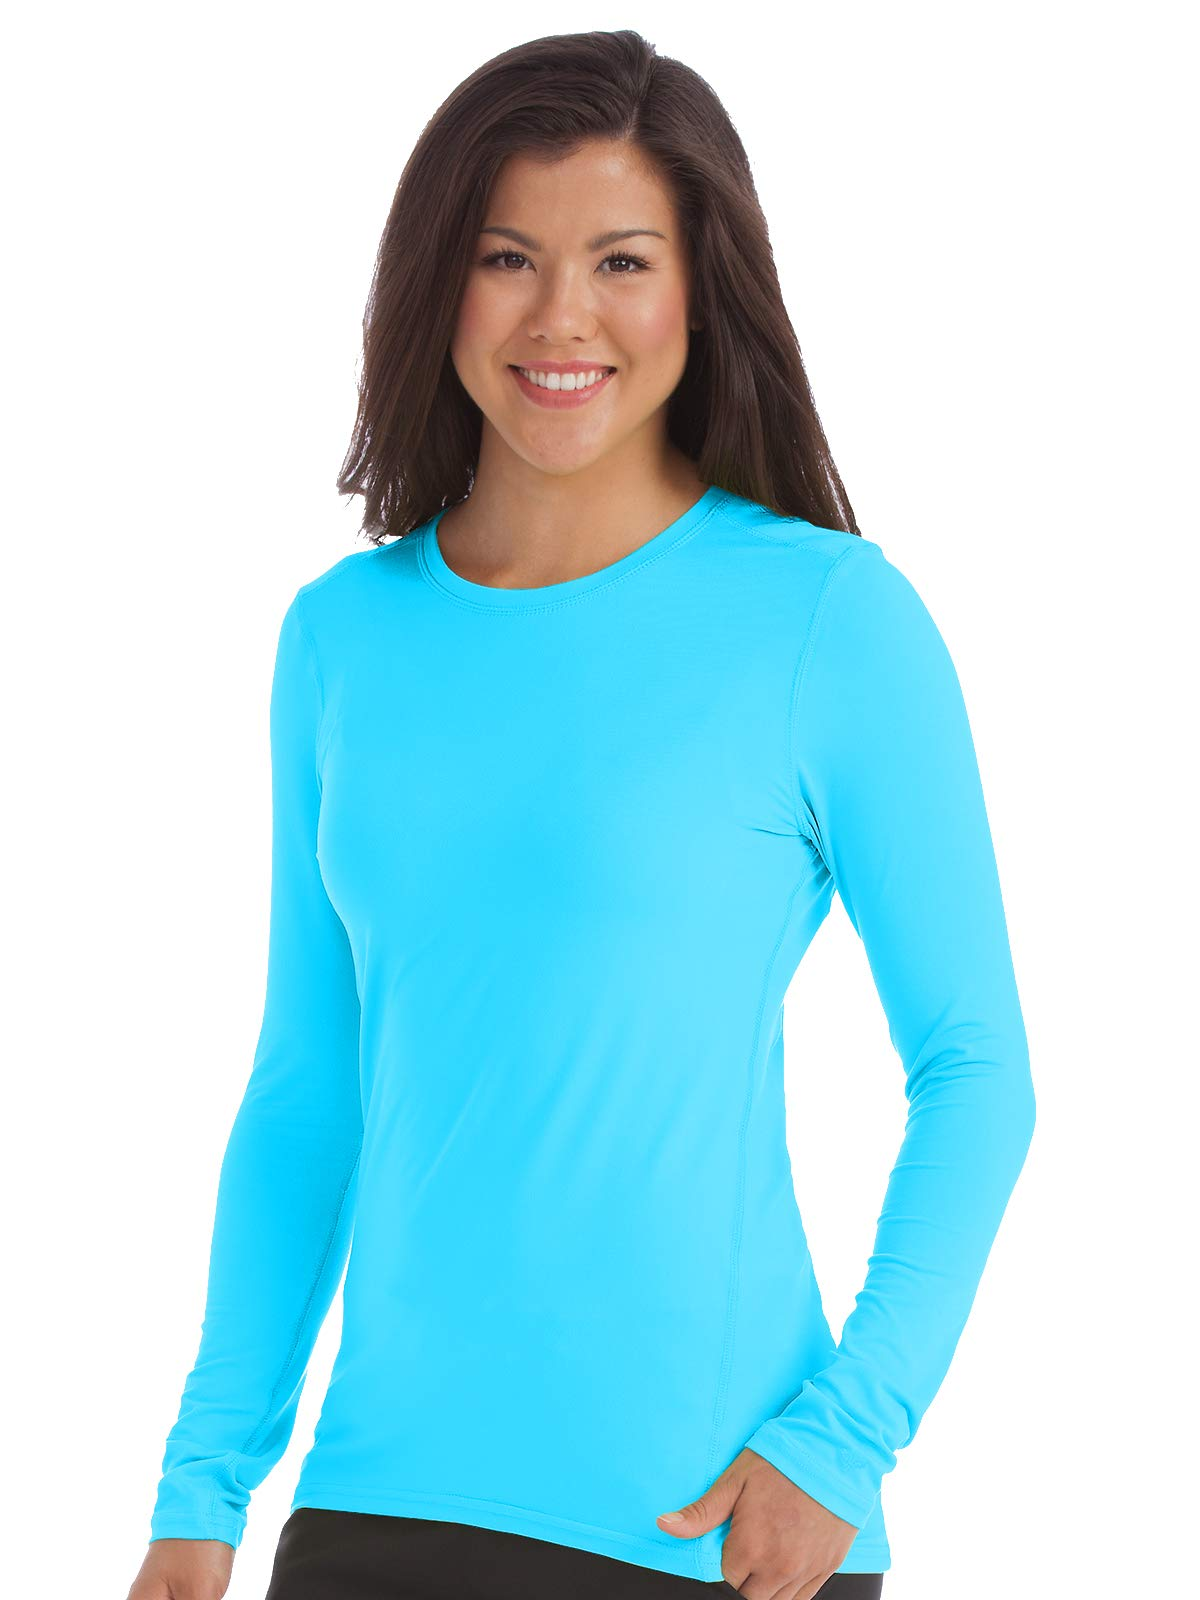 Med Couture Activate Women's Performance Knit Scrub Tee Turquoise L